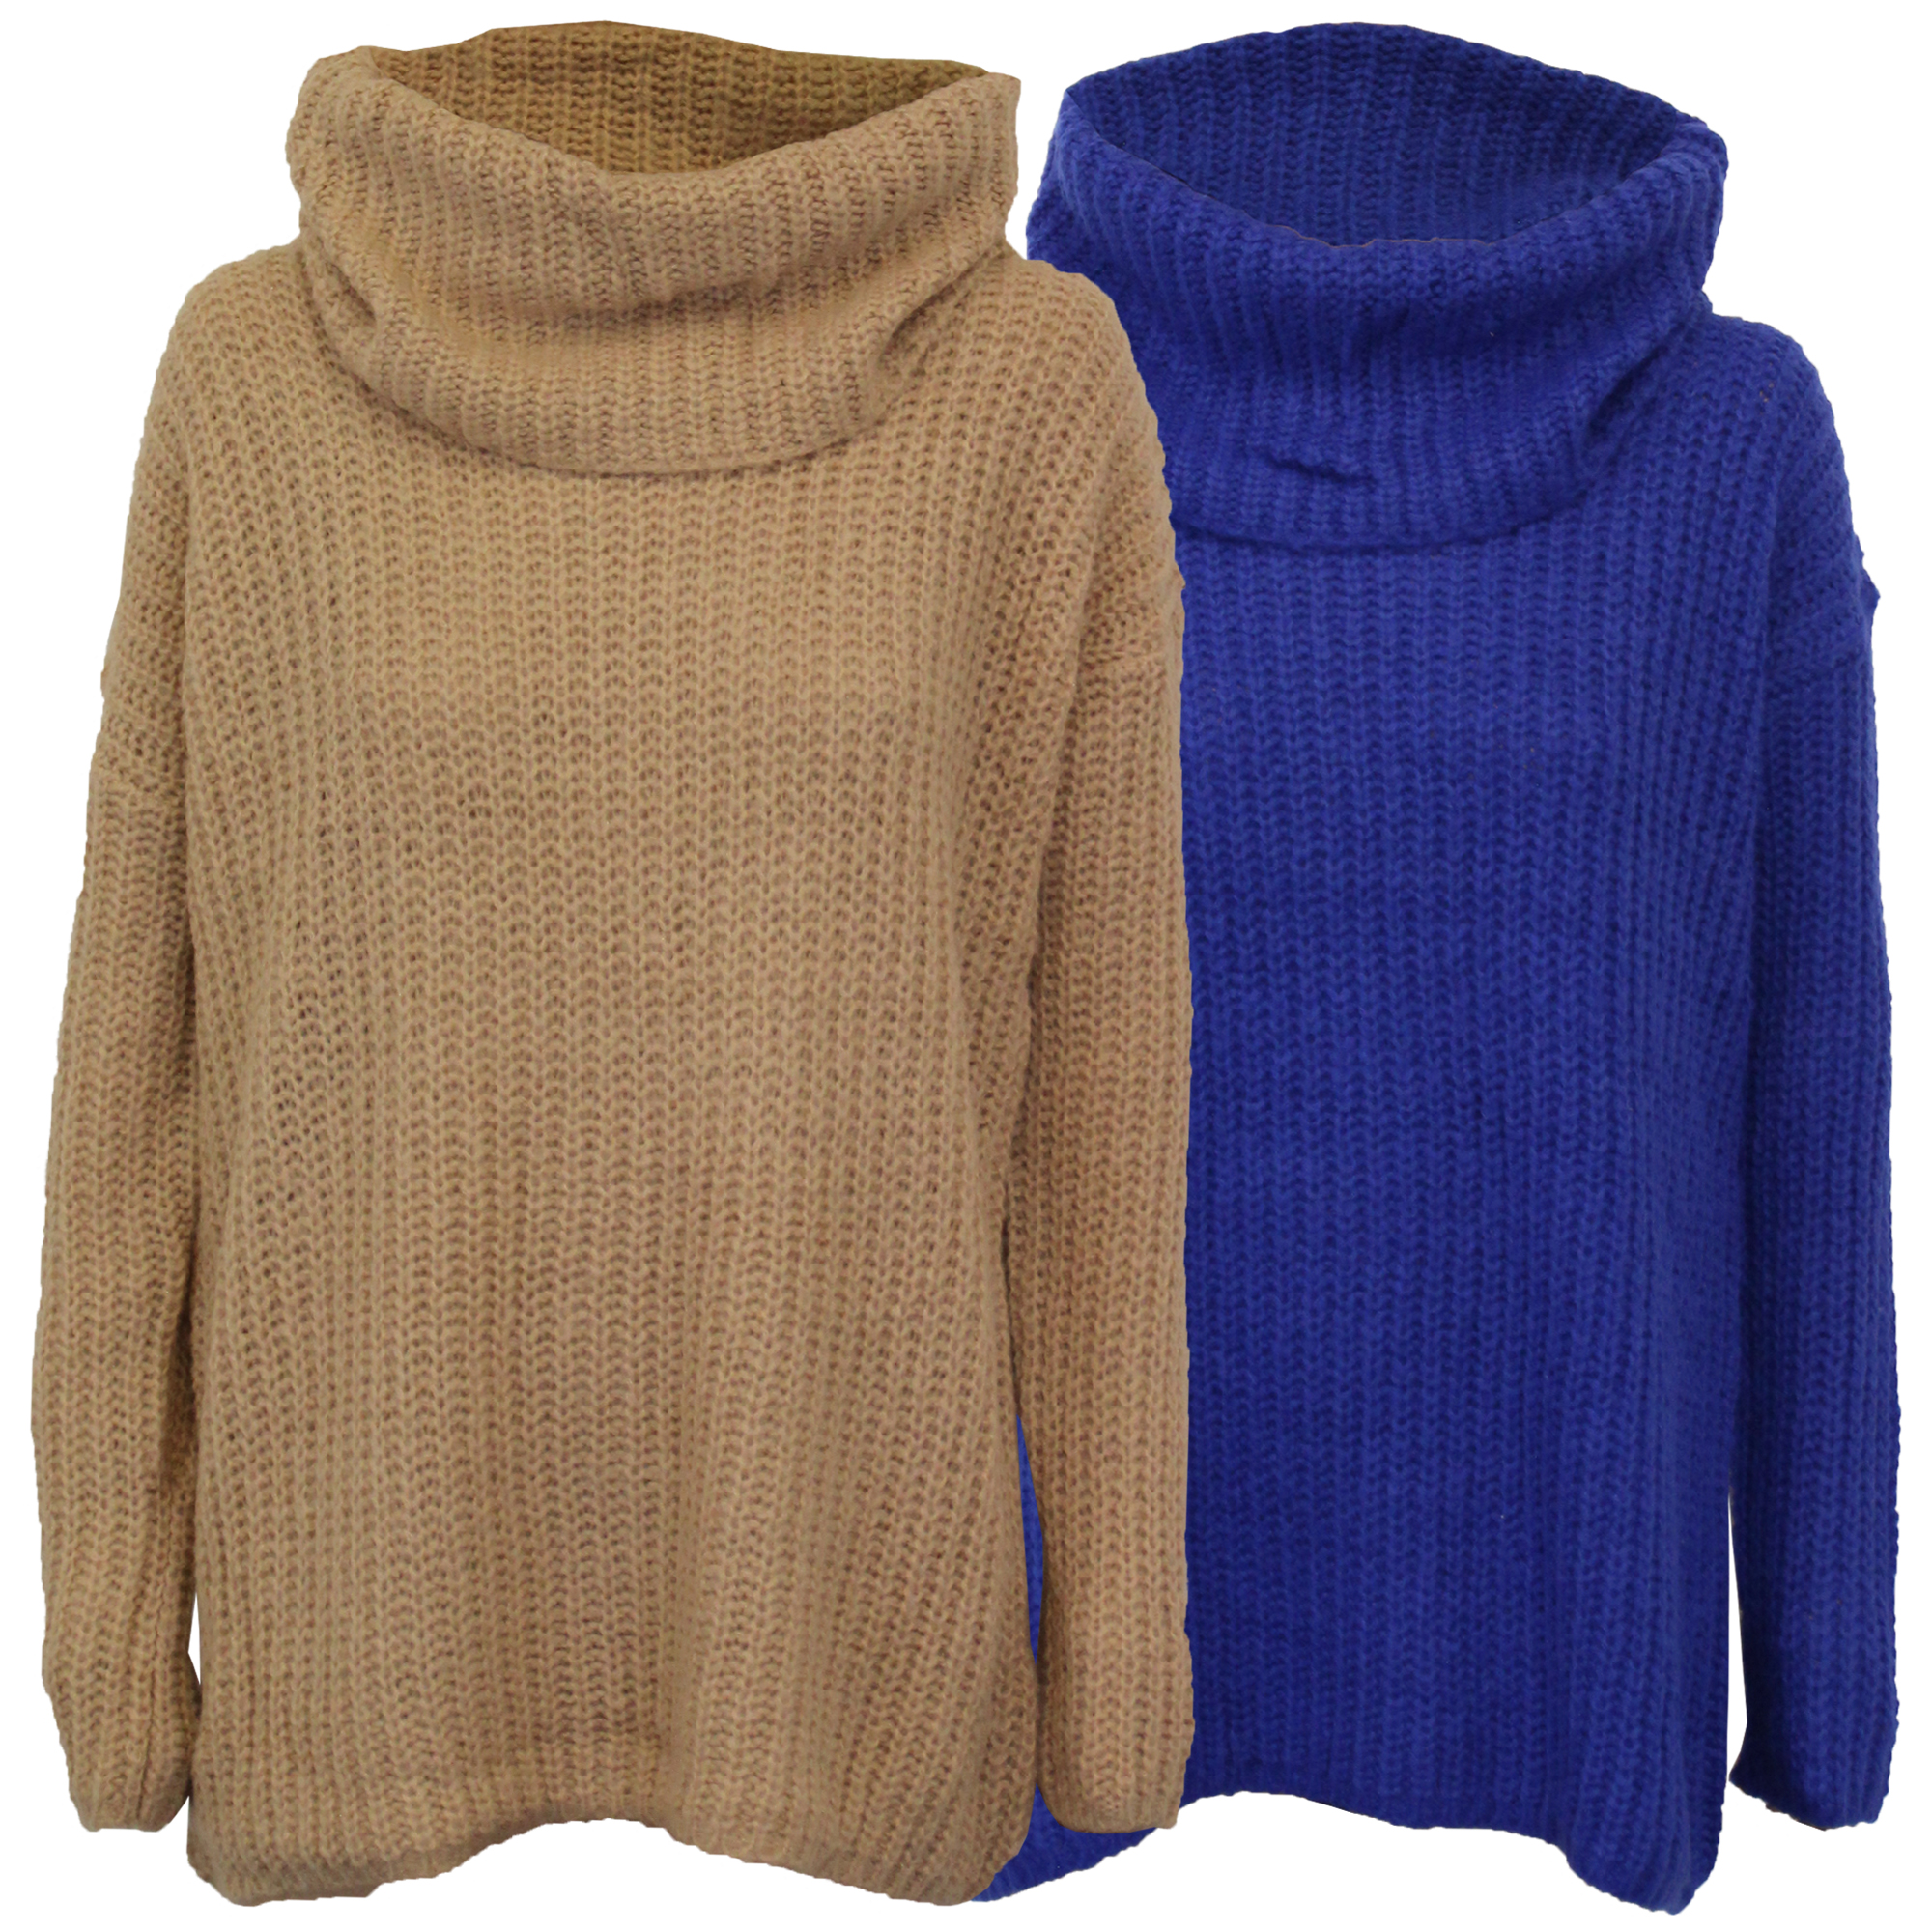 8e7d83443 Ladies Jumper Brave Soul Women Cable Knitted Polo Turtle Roll Neck ...